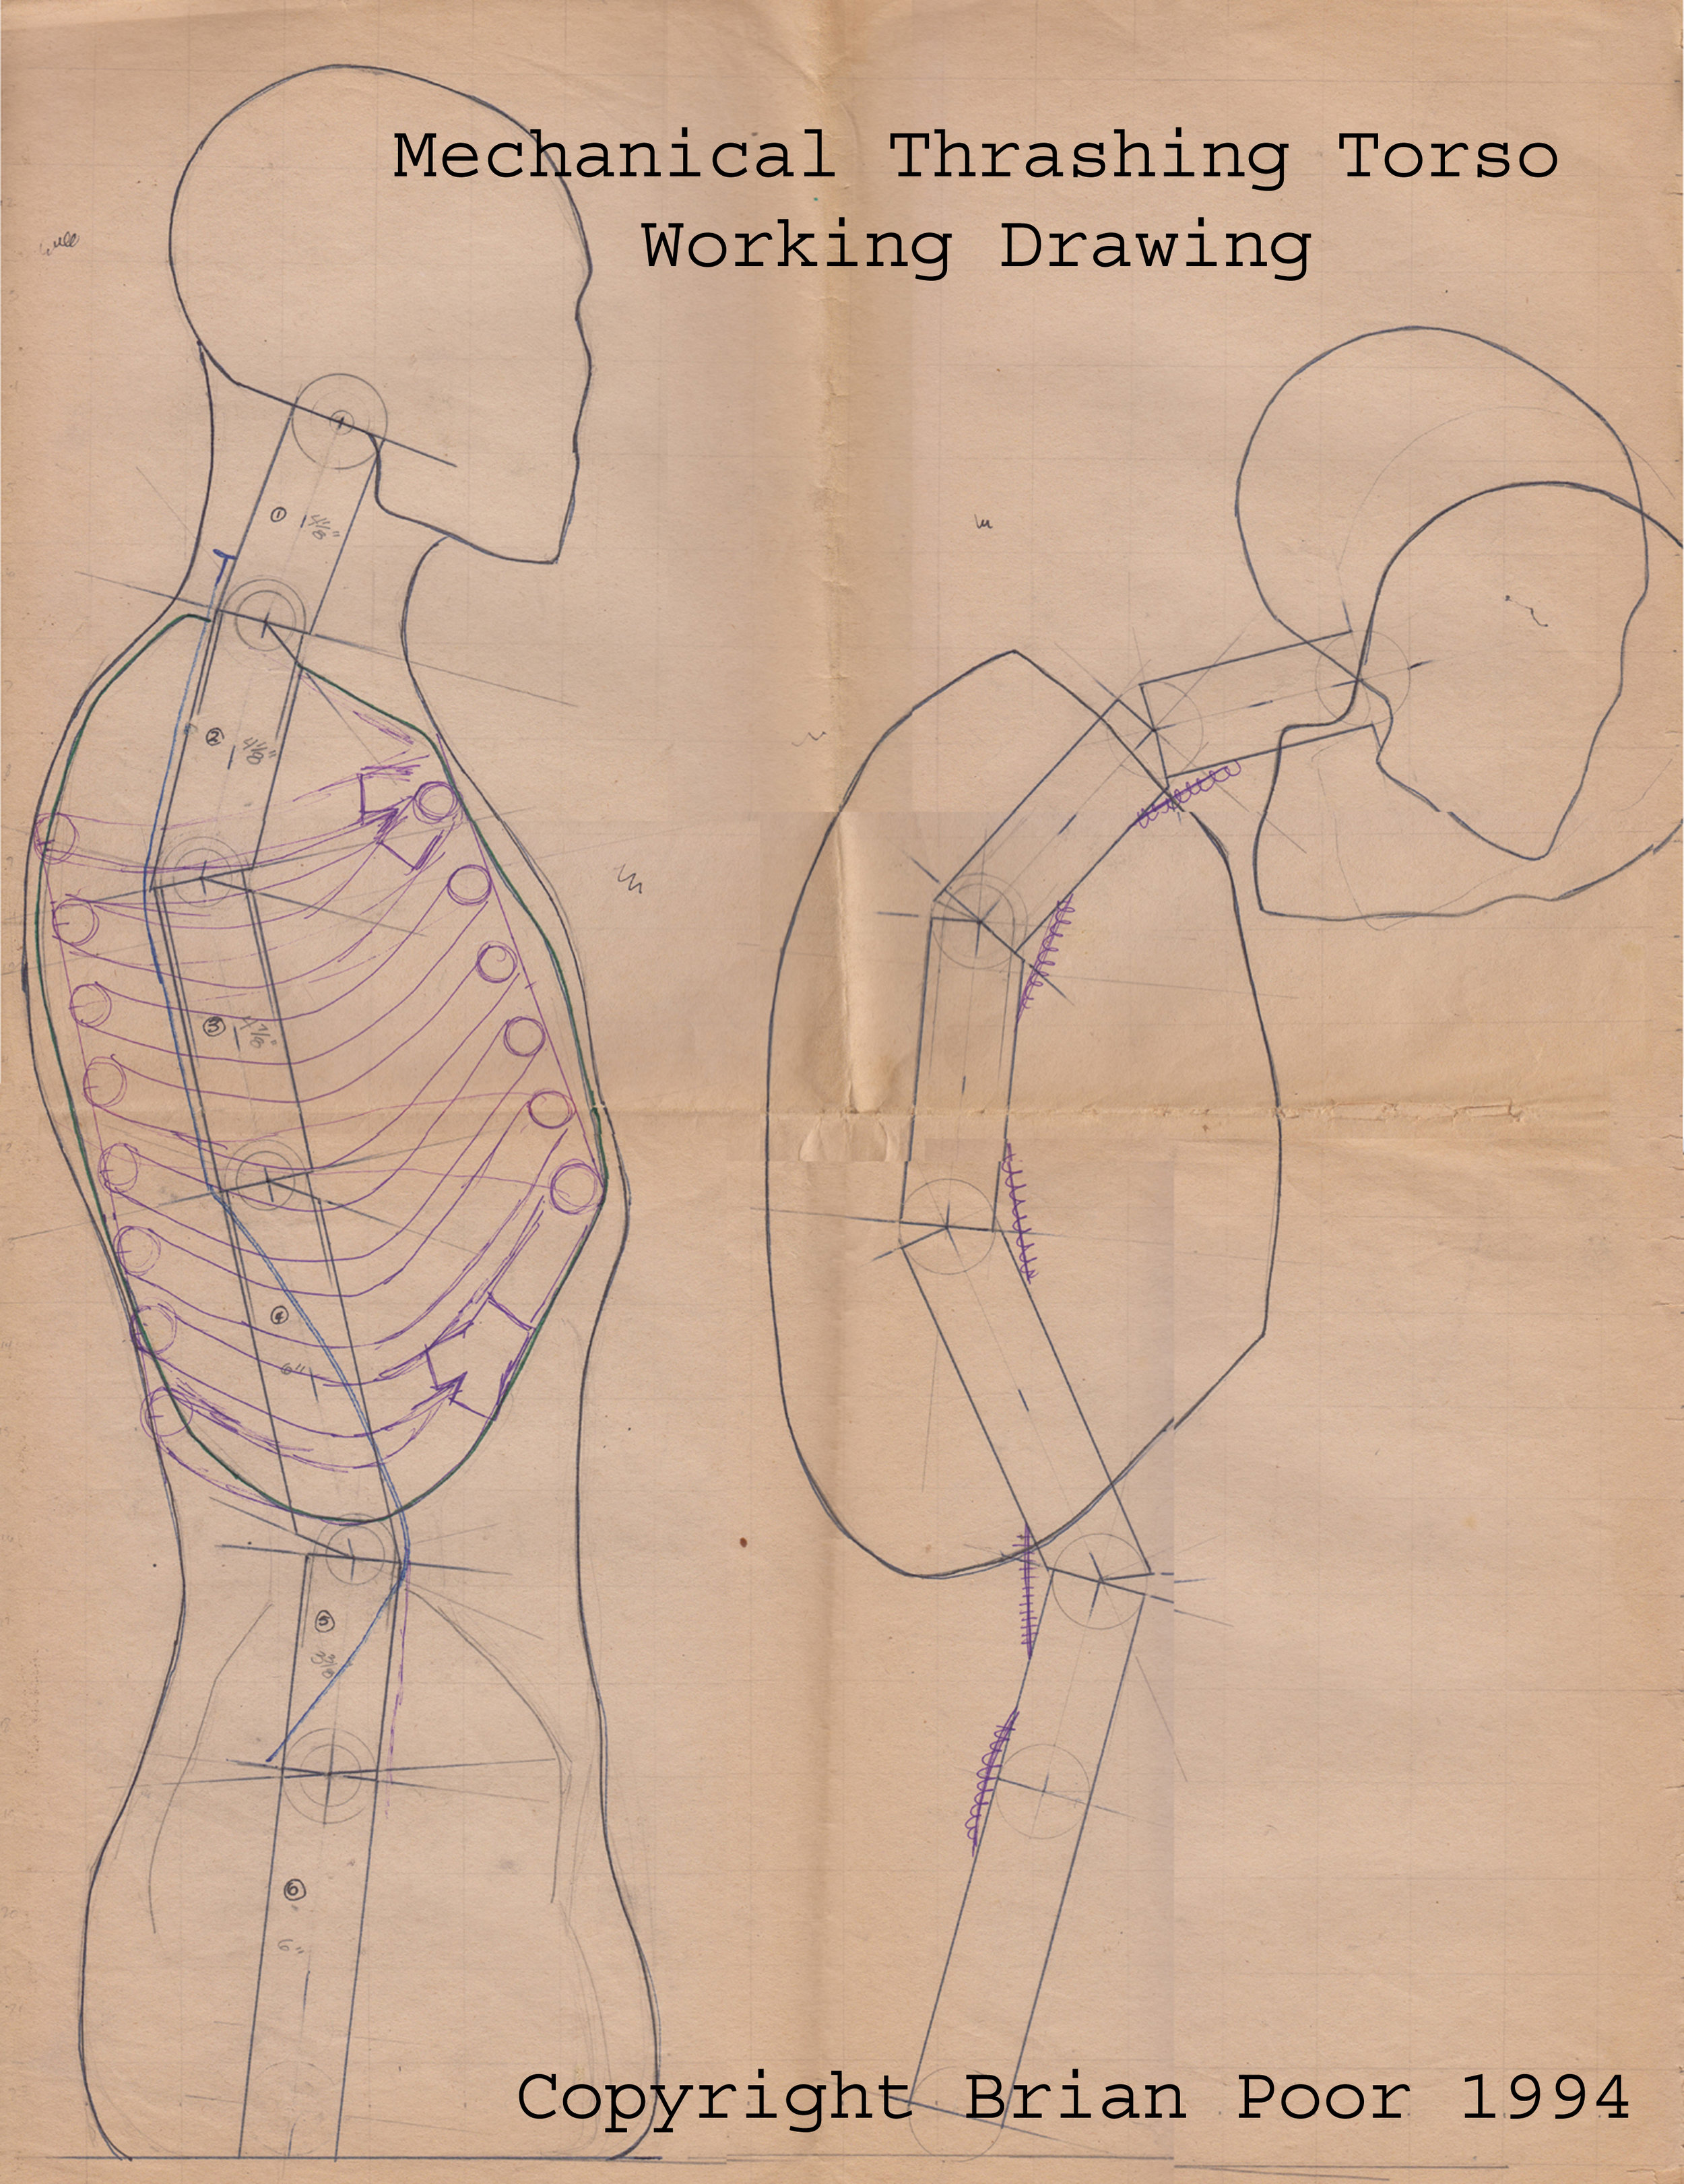 The original working drawing used in the construction of the Mechanical Thrashing Torso